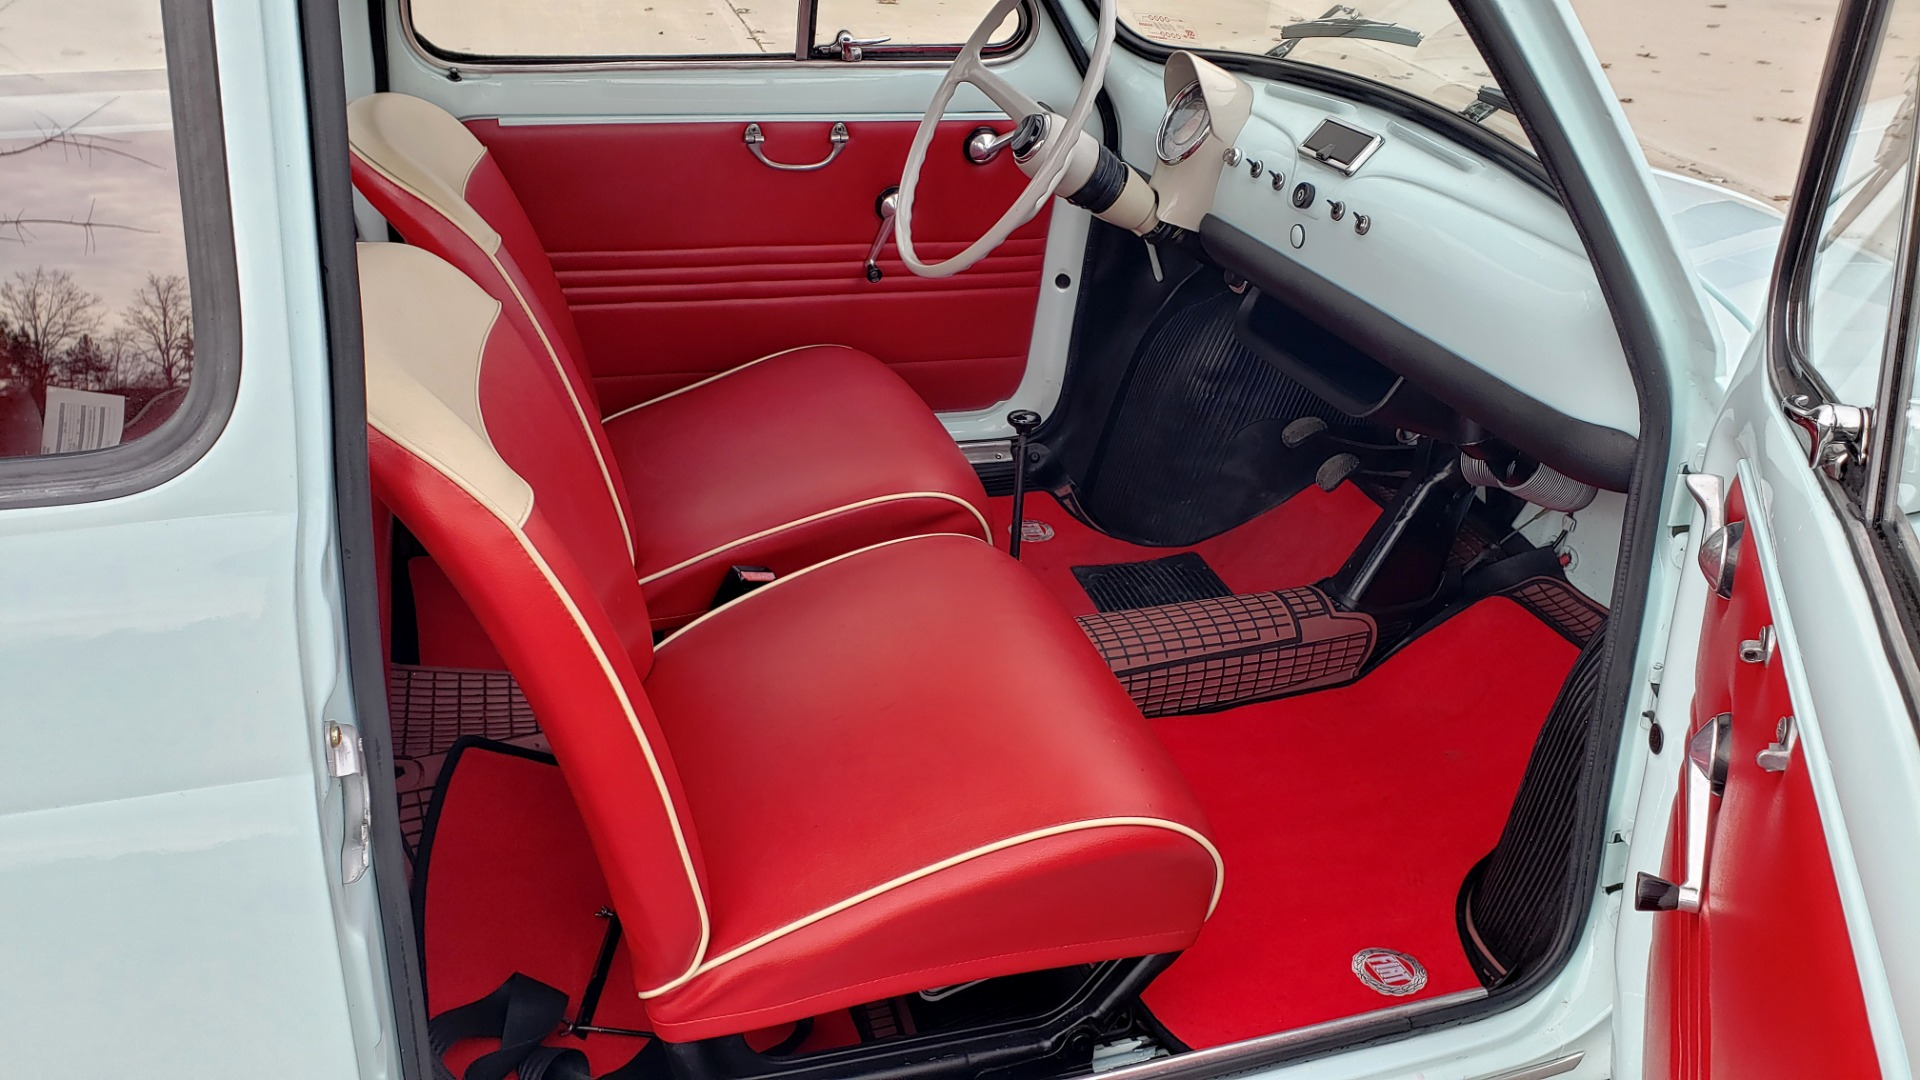 Used 1968 FIAT 500 NUOVA / SOFT-TOP / LUGGAGE RACK / RESTORED, LIKE NEW for sale $21,900 at Formula Imports in Charlotte NC 28227 29